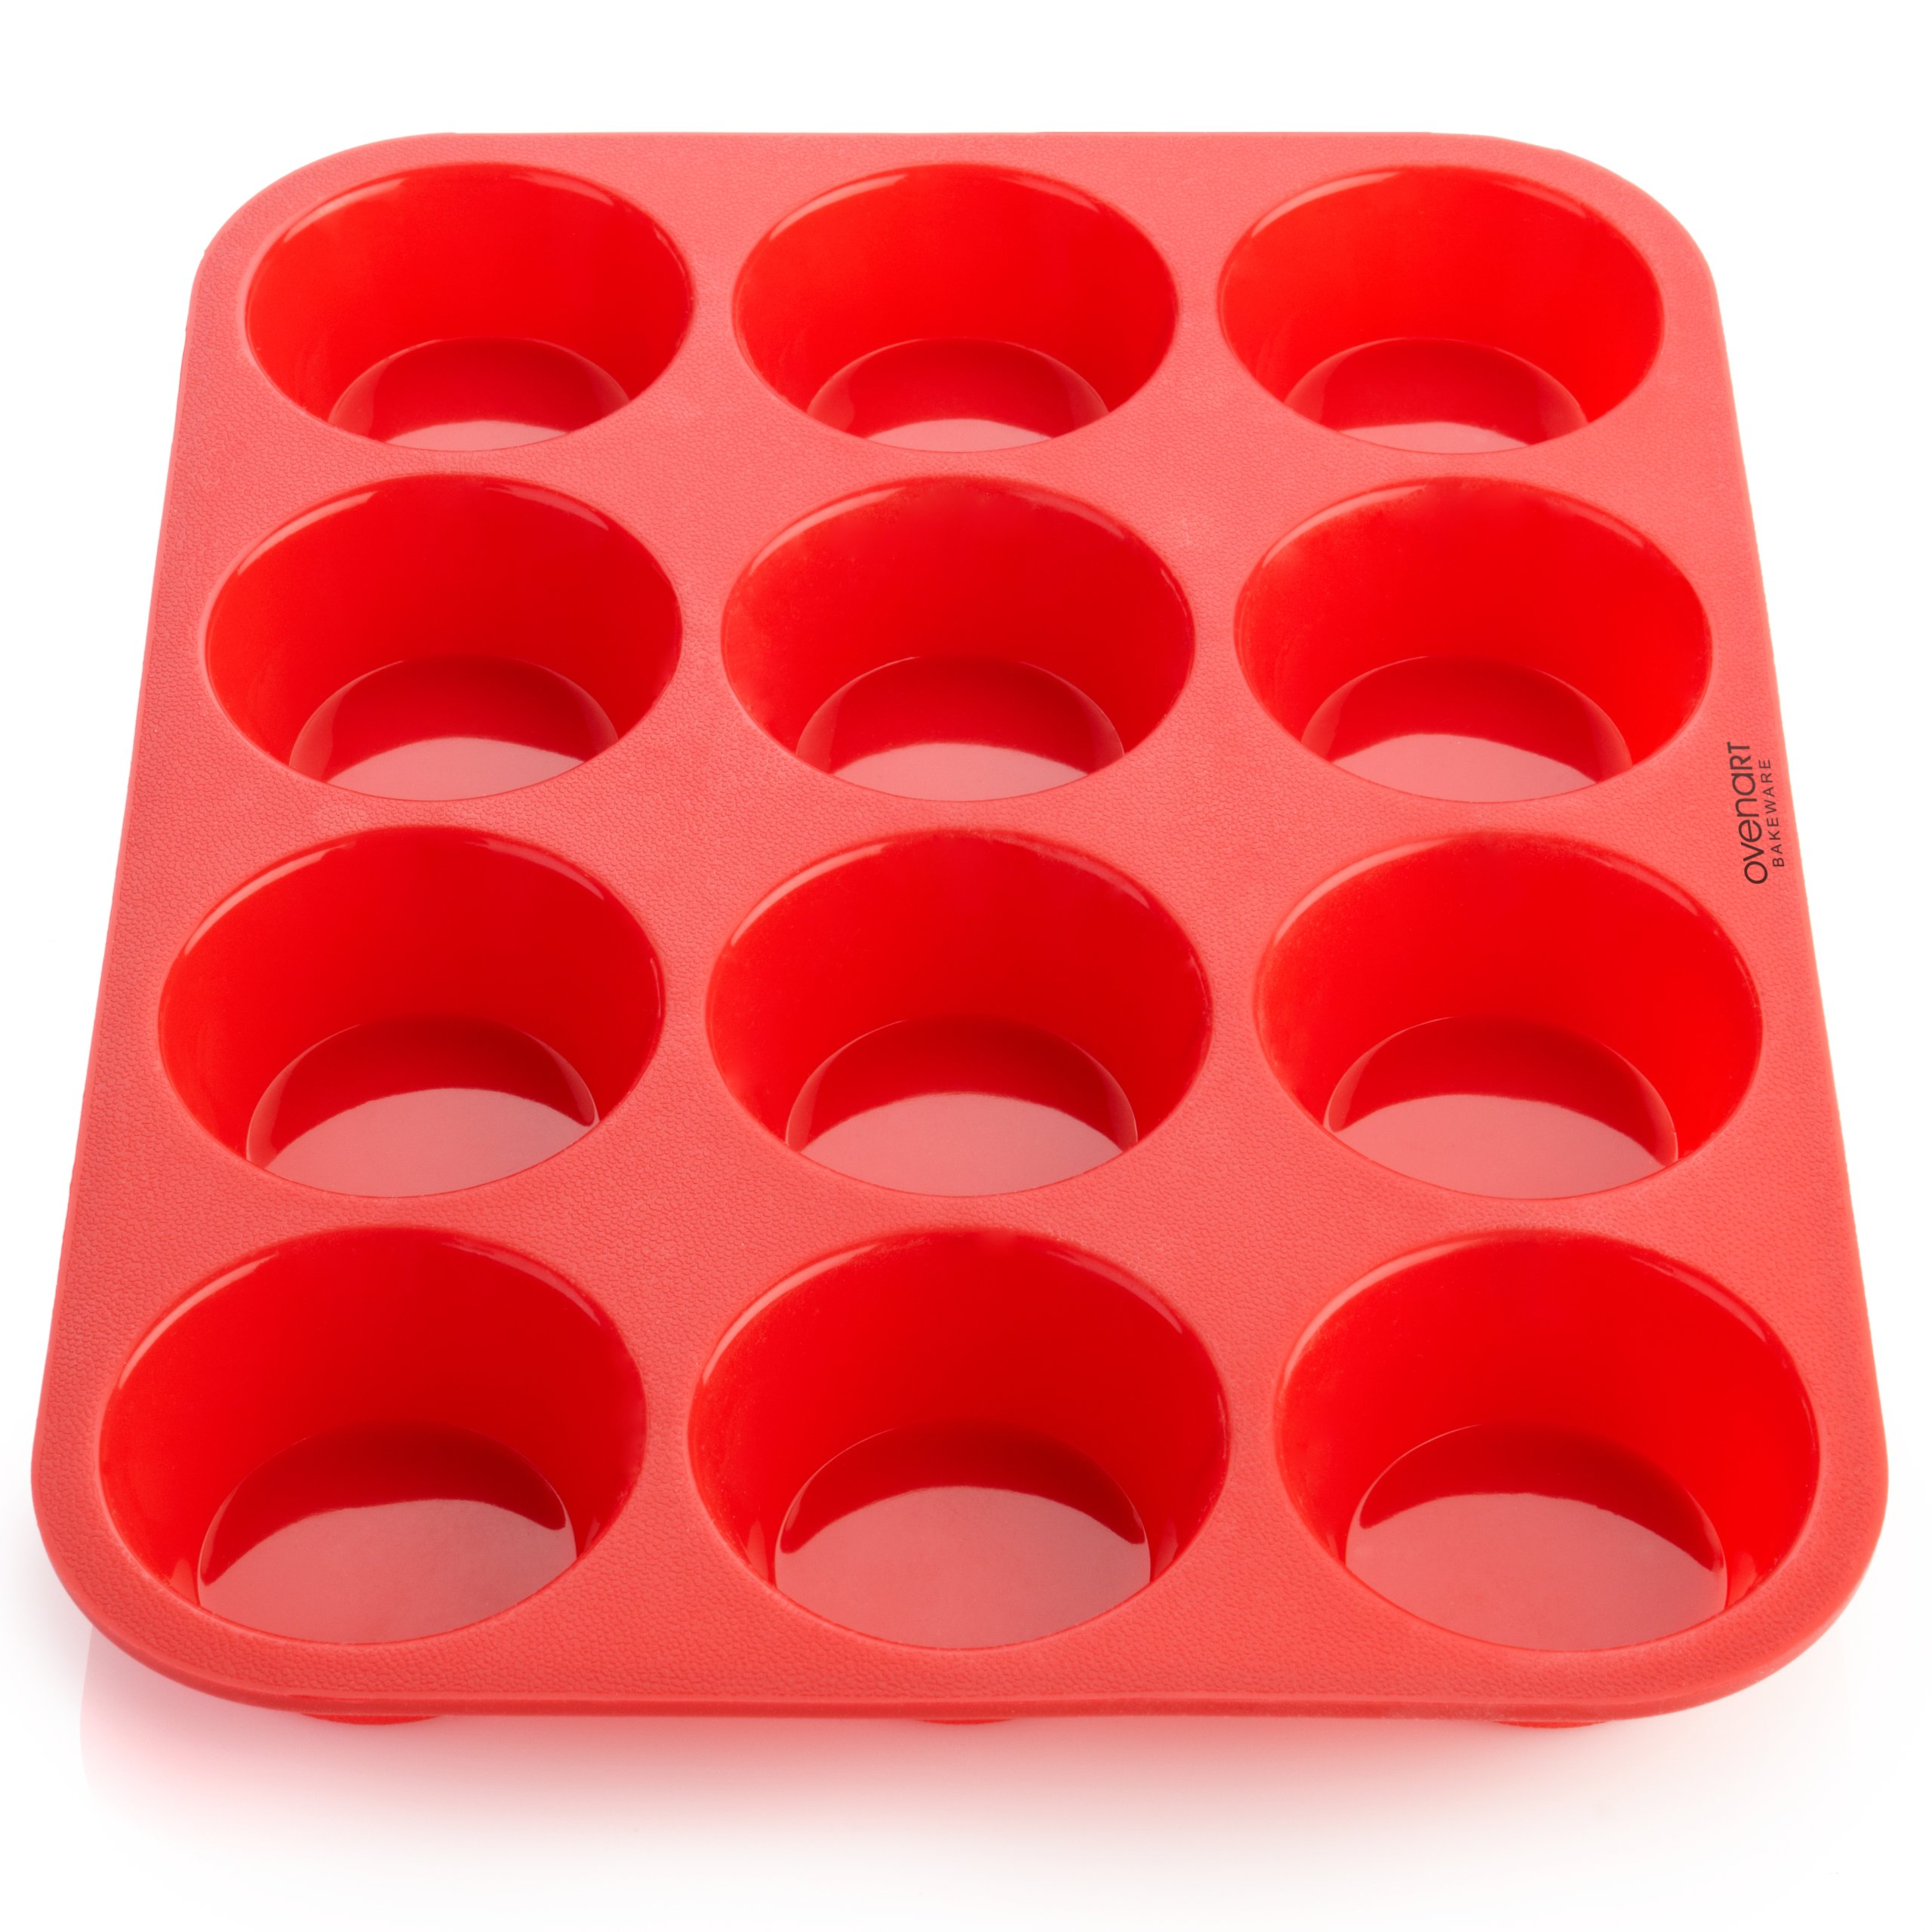 OvenArt Bakeware OV-SB50-01 Silicone Muffin Pan, 12.8'' x 9.7'' x 1.2'', Red by OvenArt Bakeware